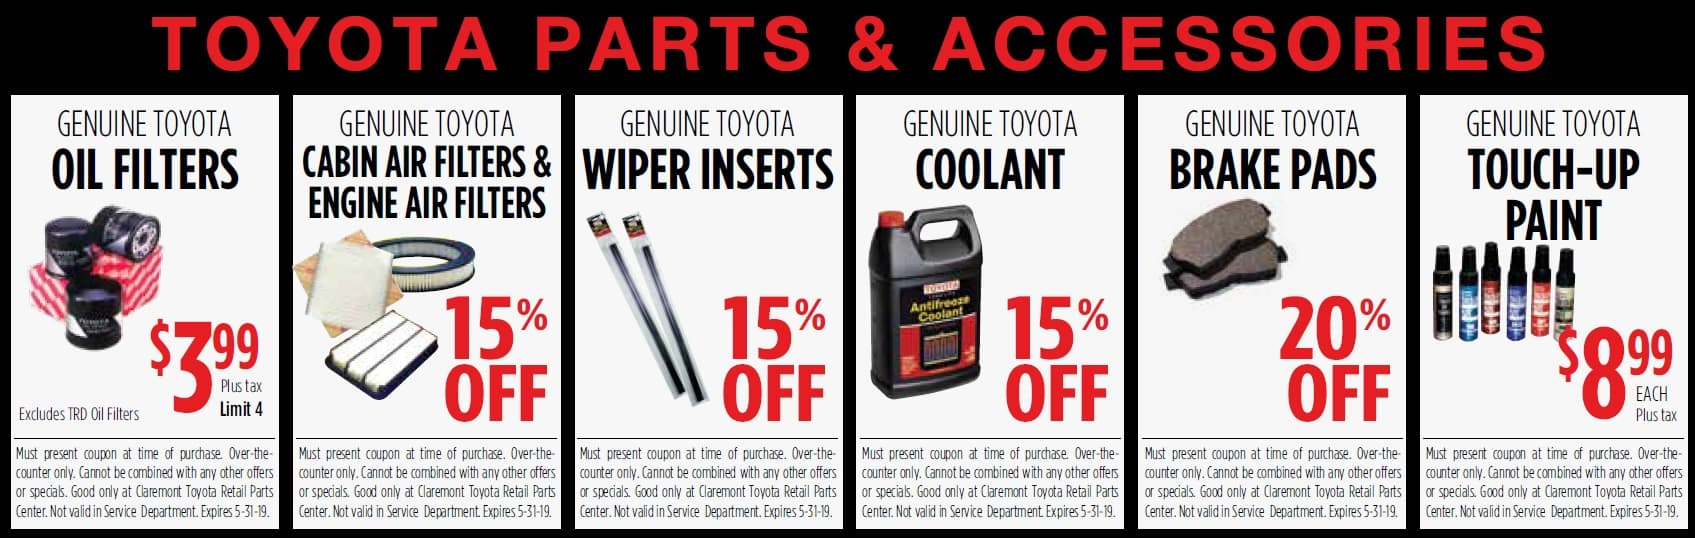 Auto Accessories Garage Military Discount Parts Specials Claremont Toyota